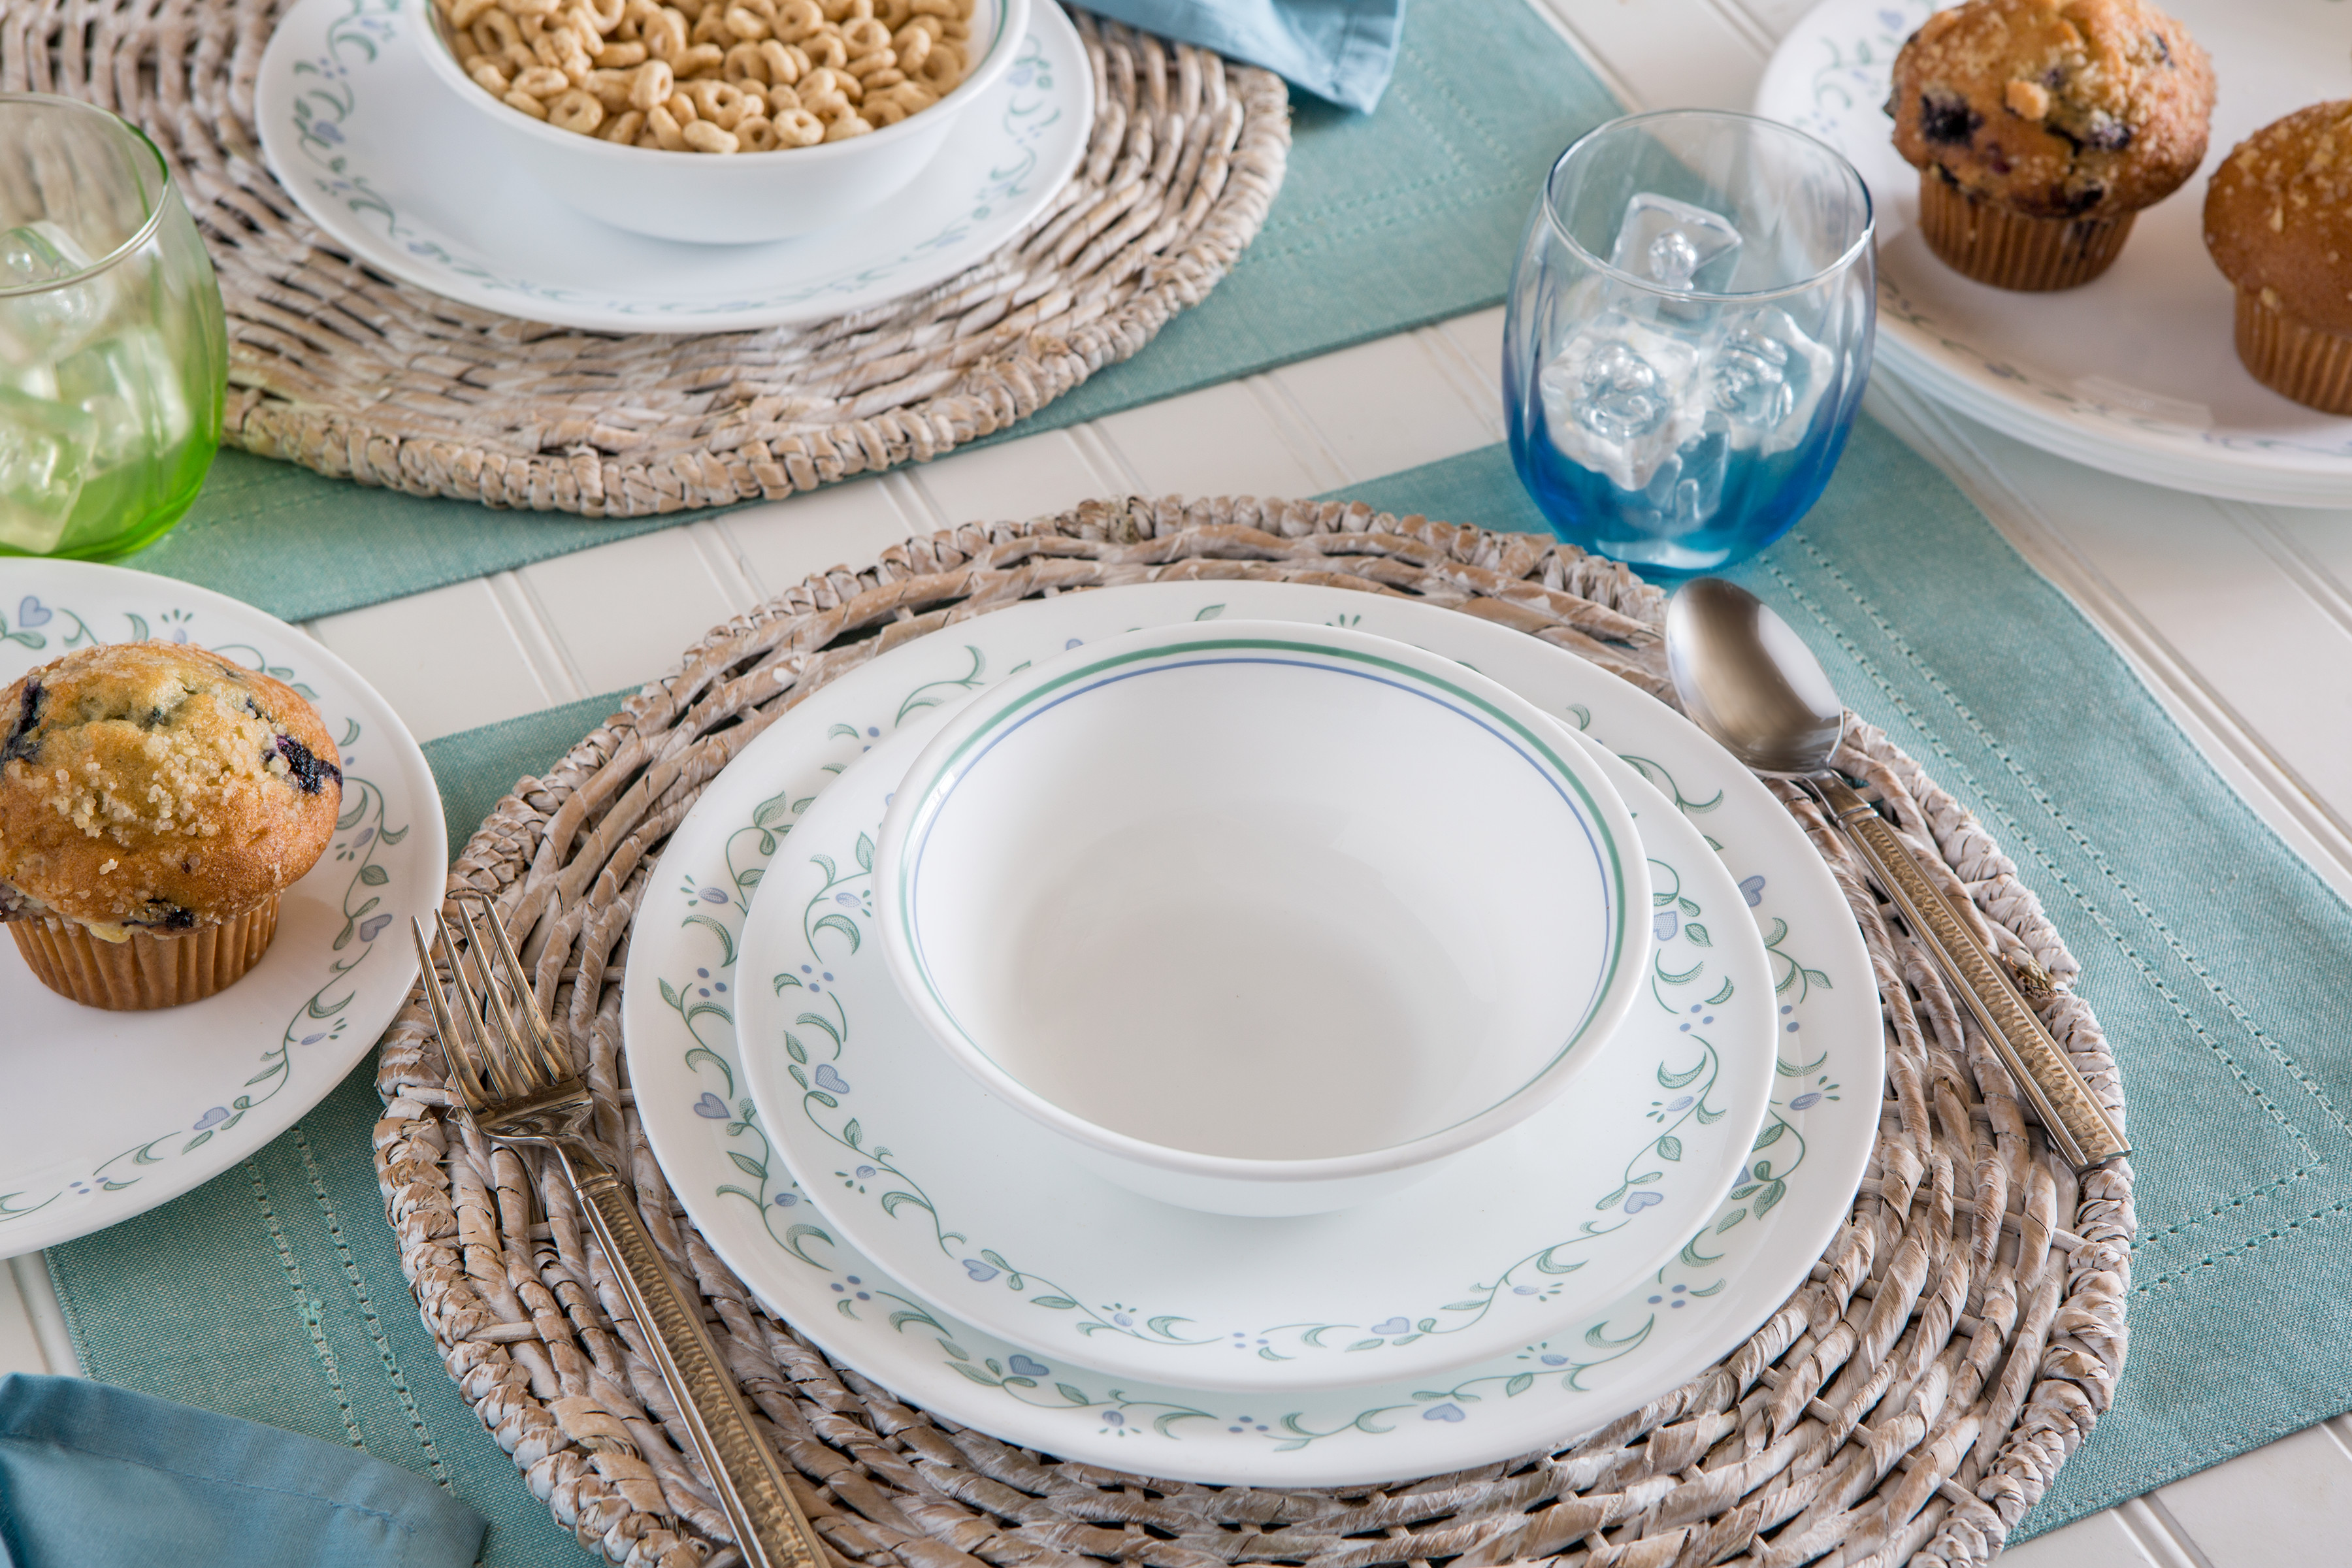 Corelle Livingware Country Cottage 16-Piece Dinnerware Set  sc 1 st  Walmart & Corelle Livingware Country Cottage 16-Piece Dinnerware Set - Walmart.com